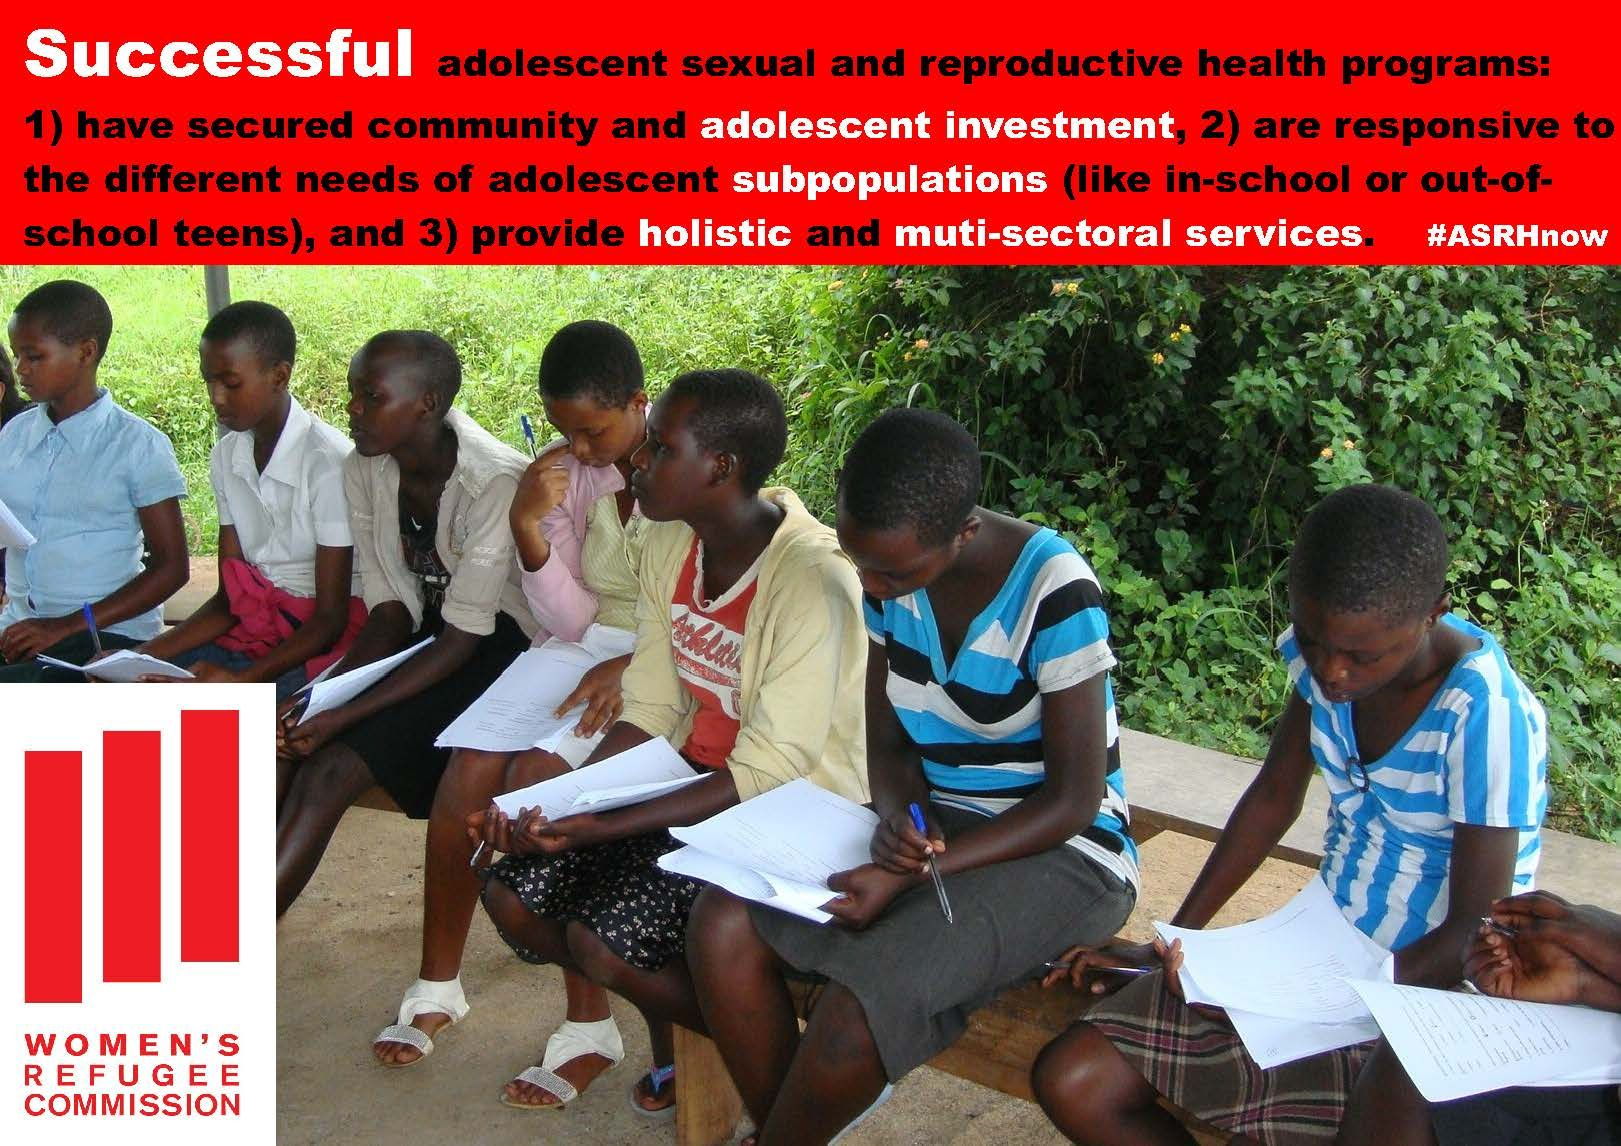 Pin on Adolescent Sexual and Reproductive Health